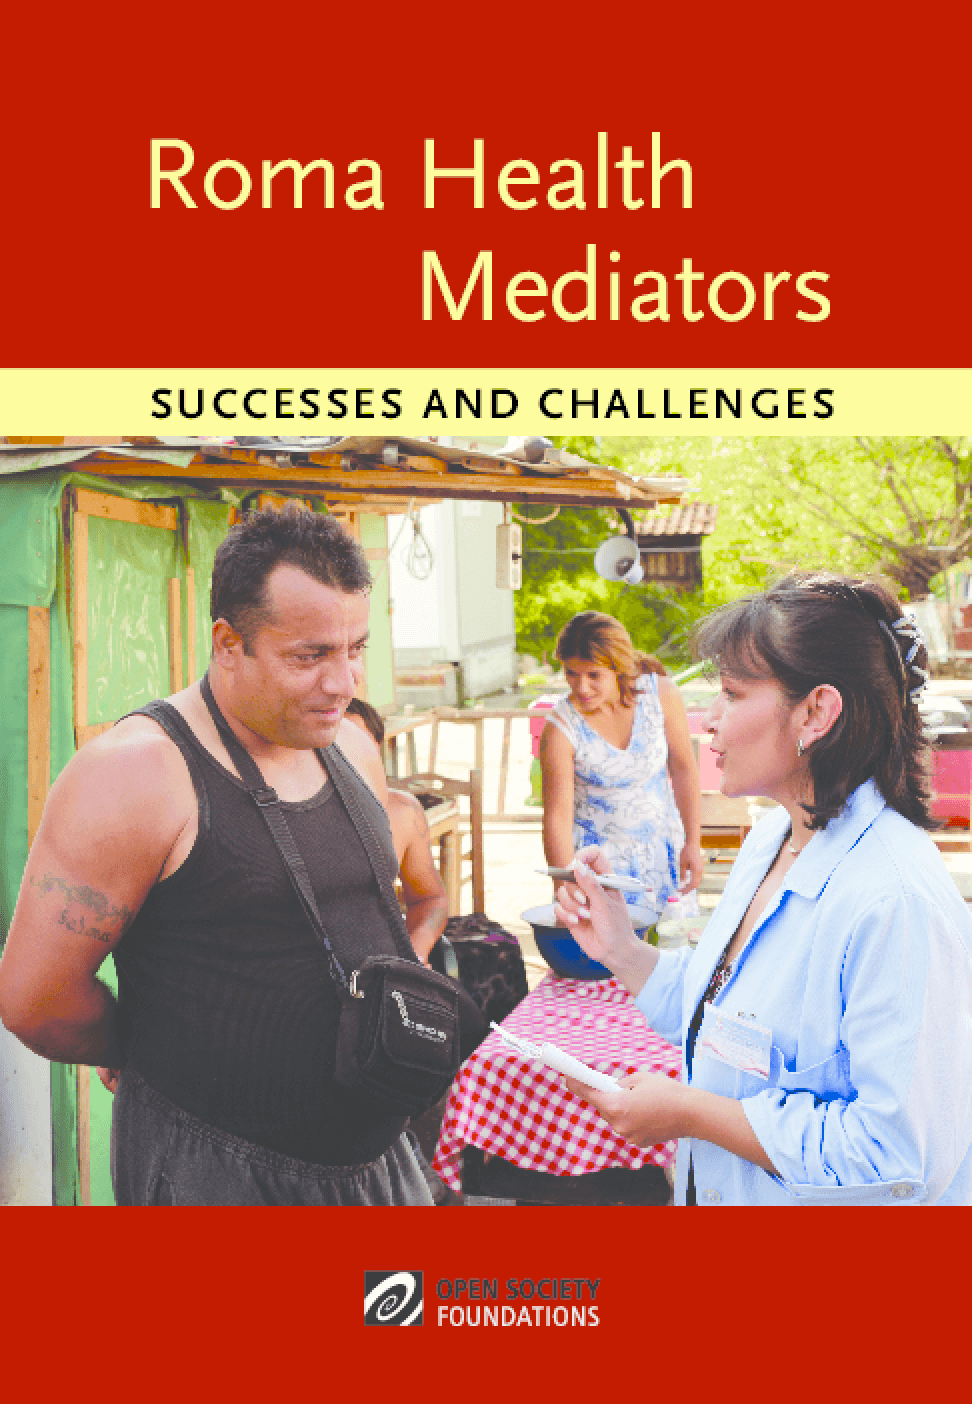 Roma Health Mediators: Successes and Challenges